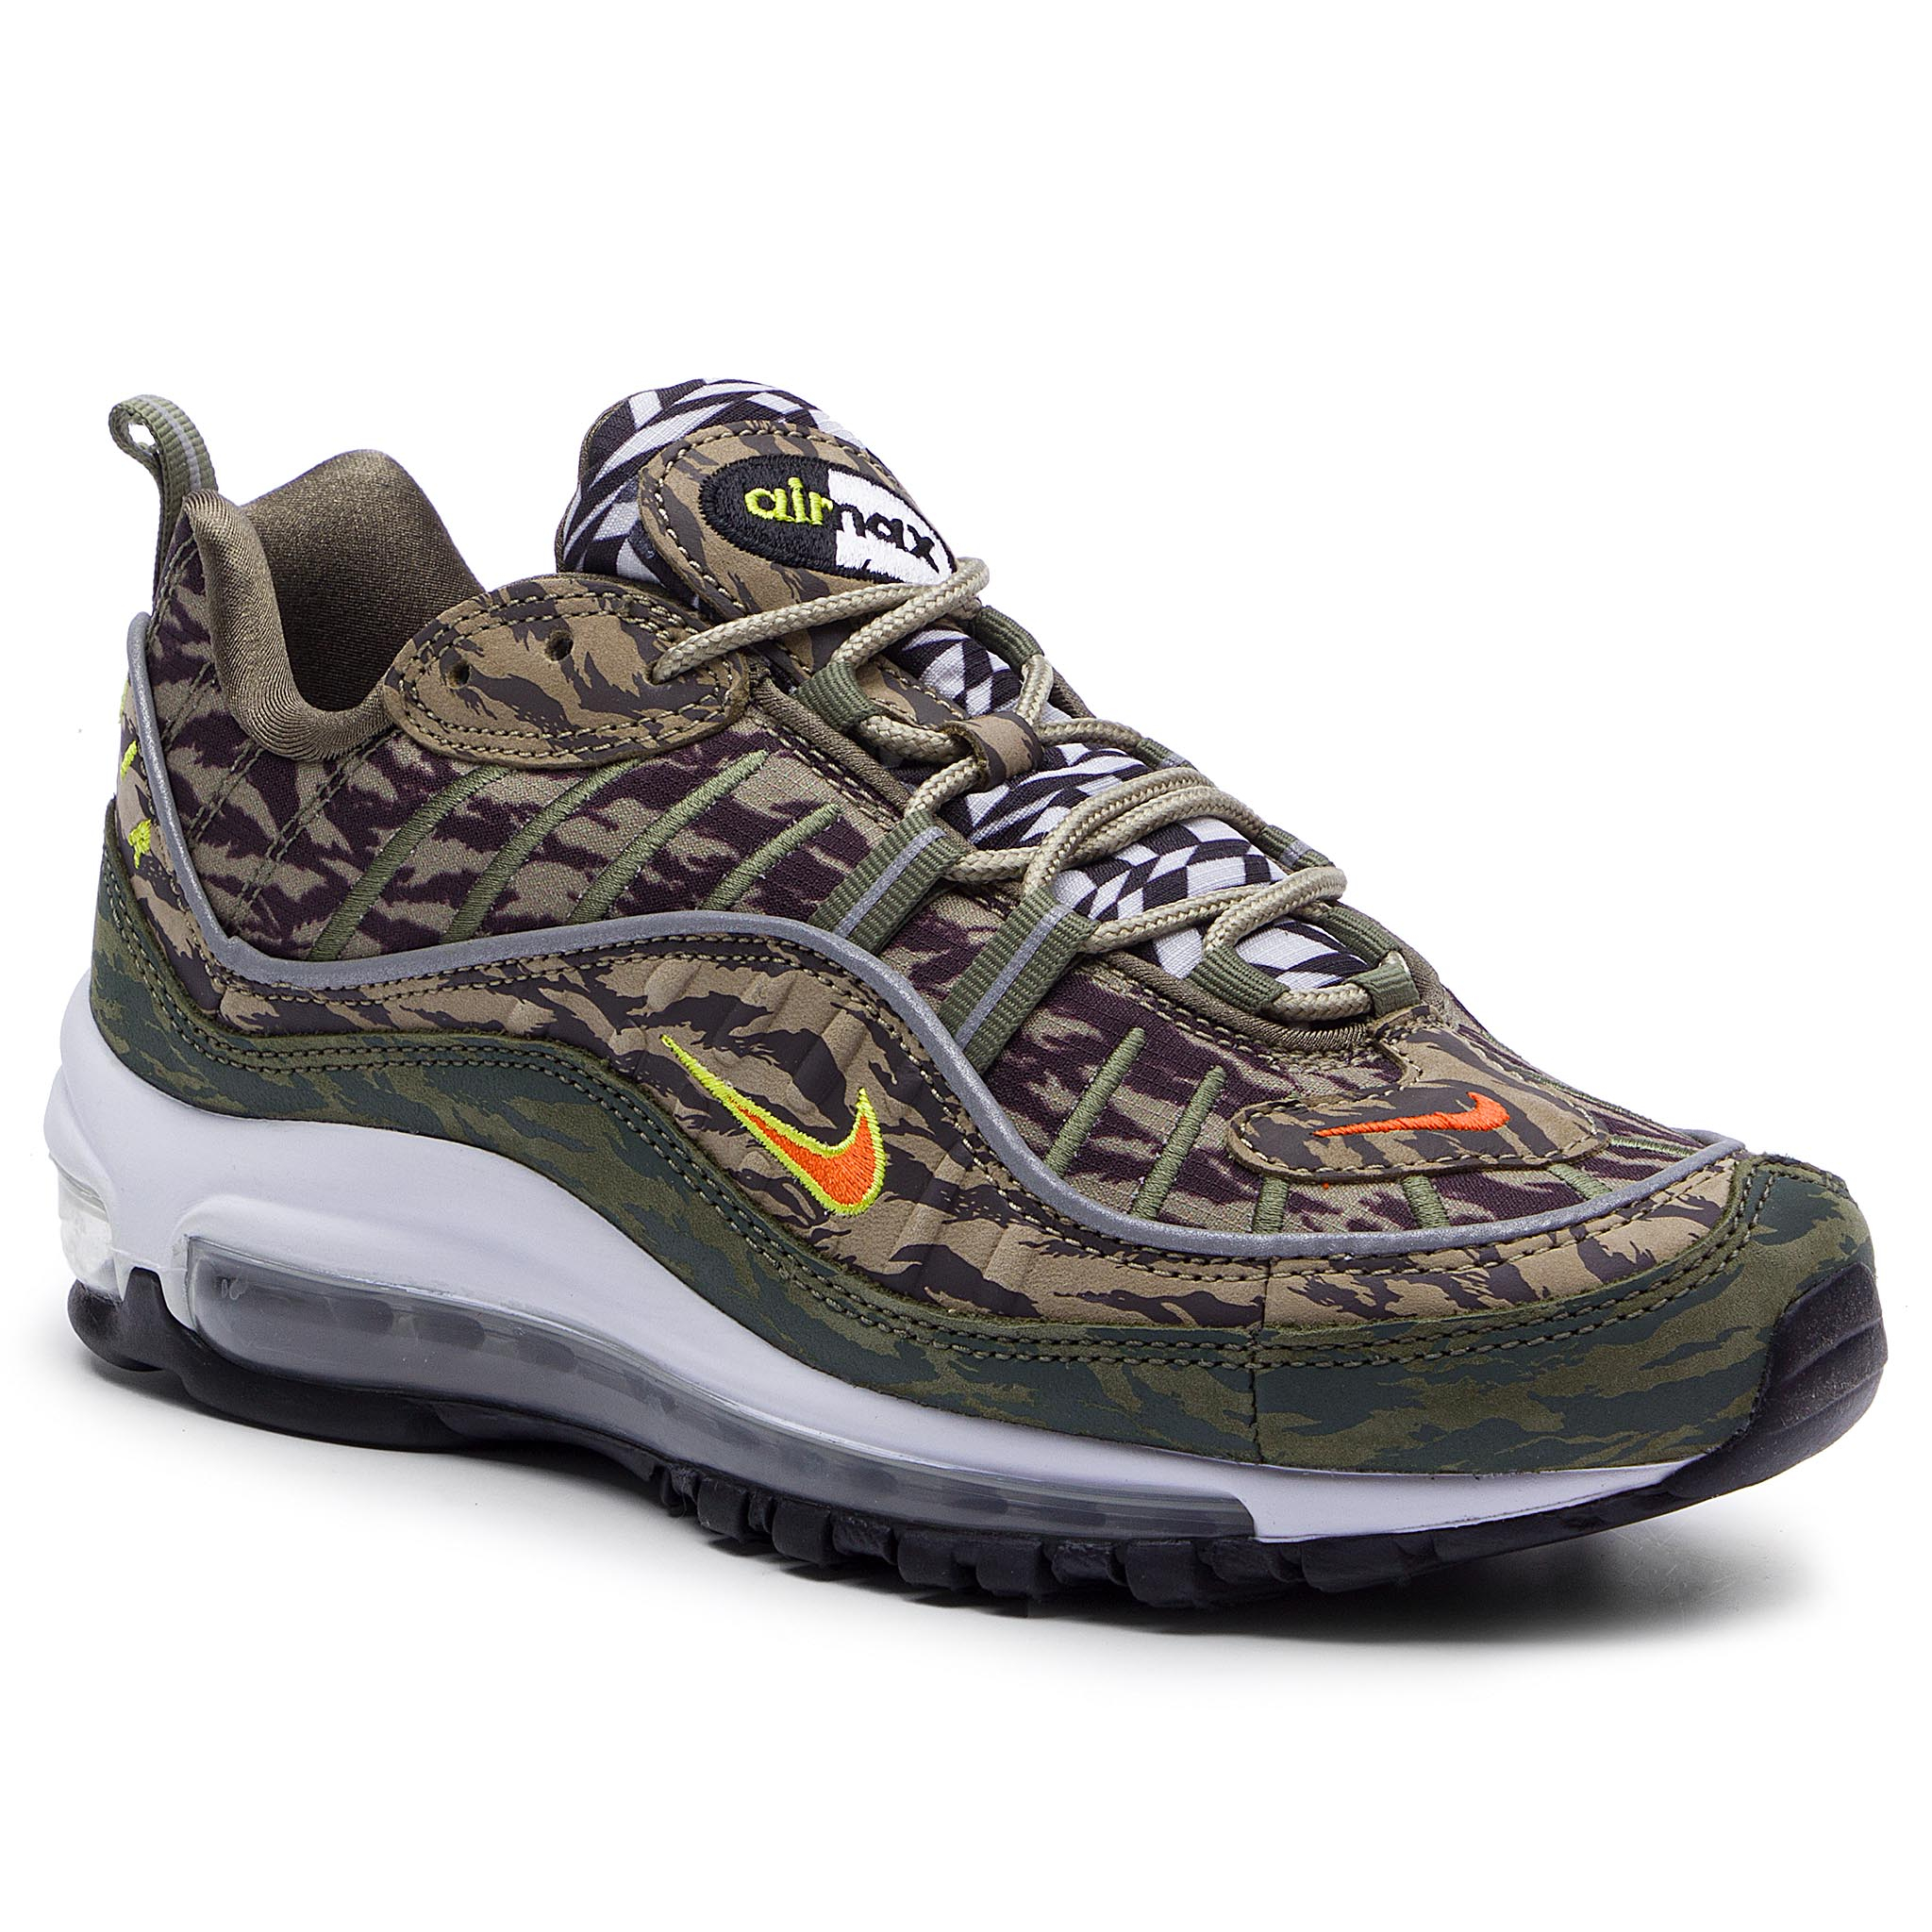 Sneaker Nike Zapatos NIKE - Air Max 98 Aop AQ4130 200 Khaki/Team Orange/Medium Olive